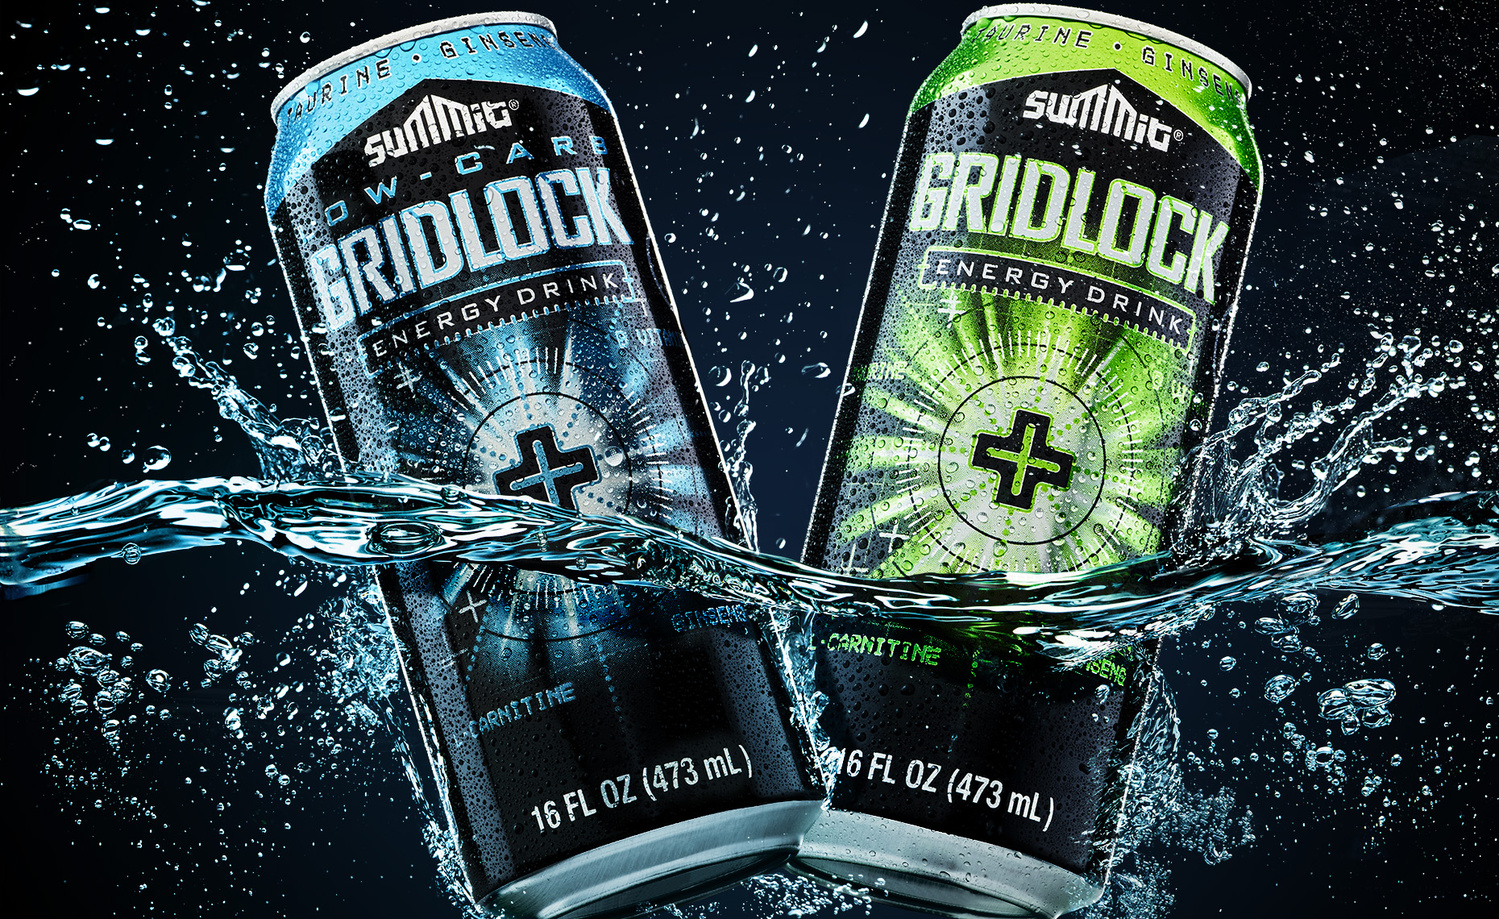 splash shot of gridlock energy drink photo by brian kaldorf by Brian Kaldorf